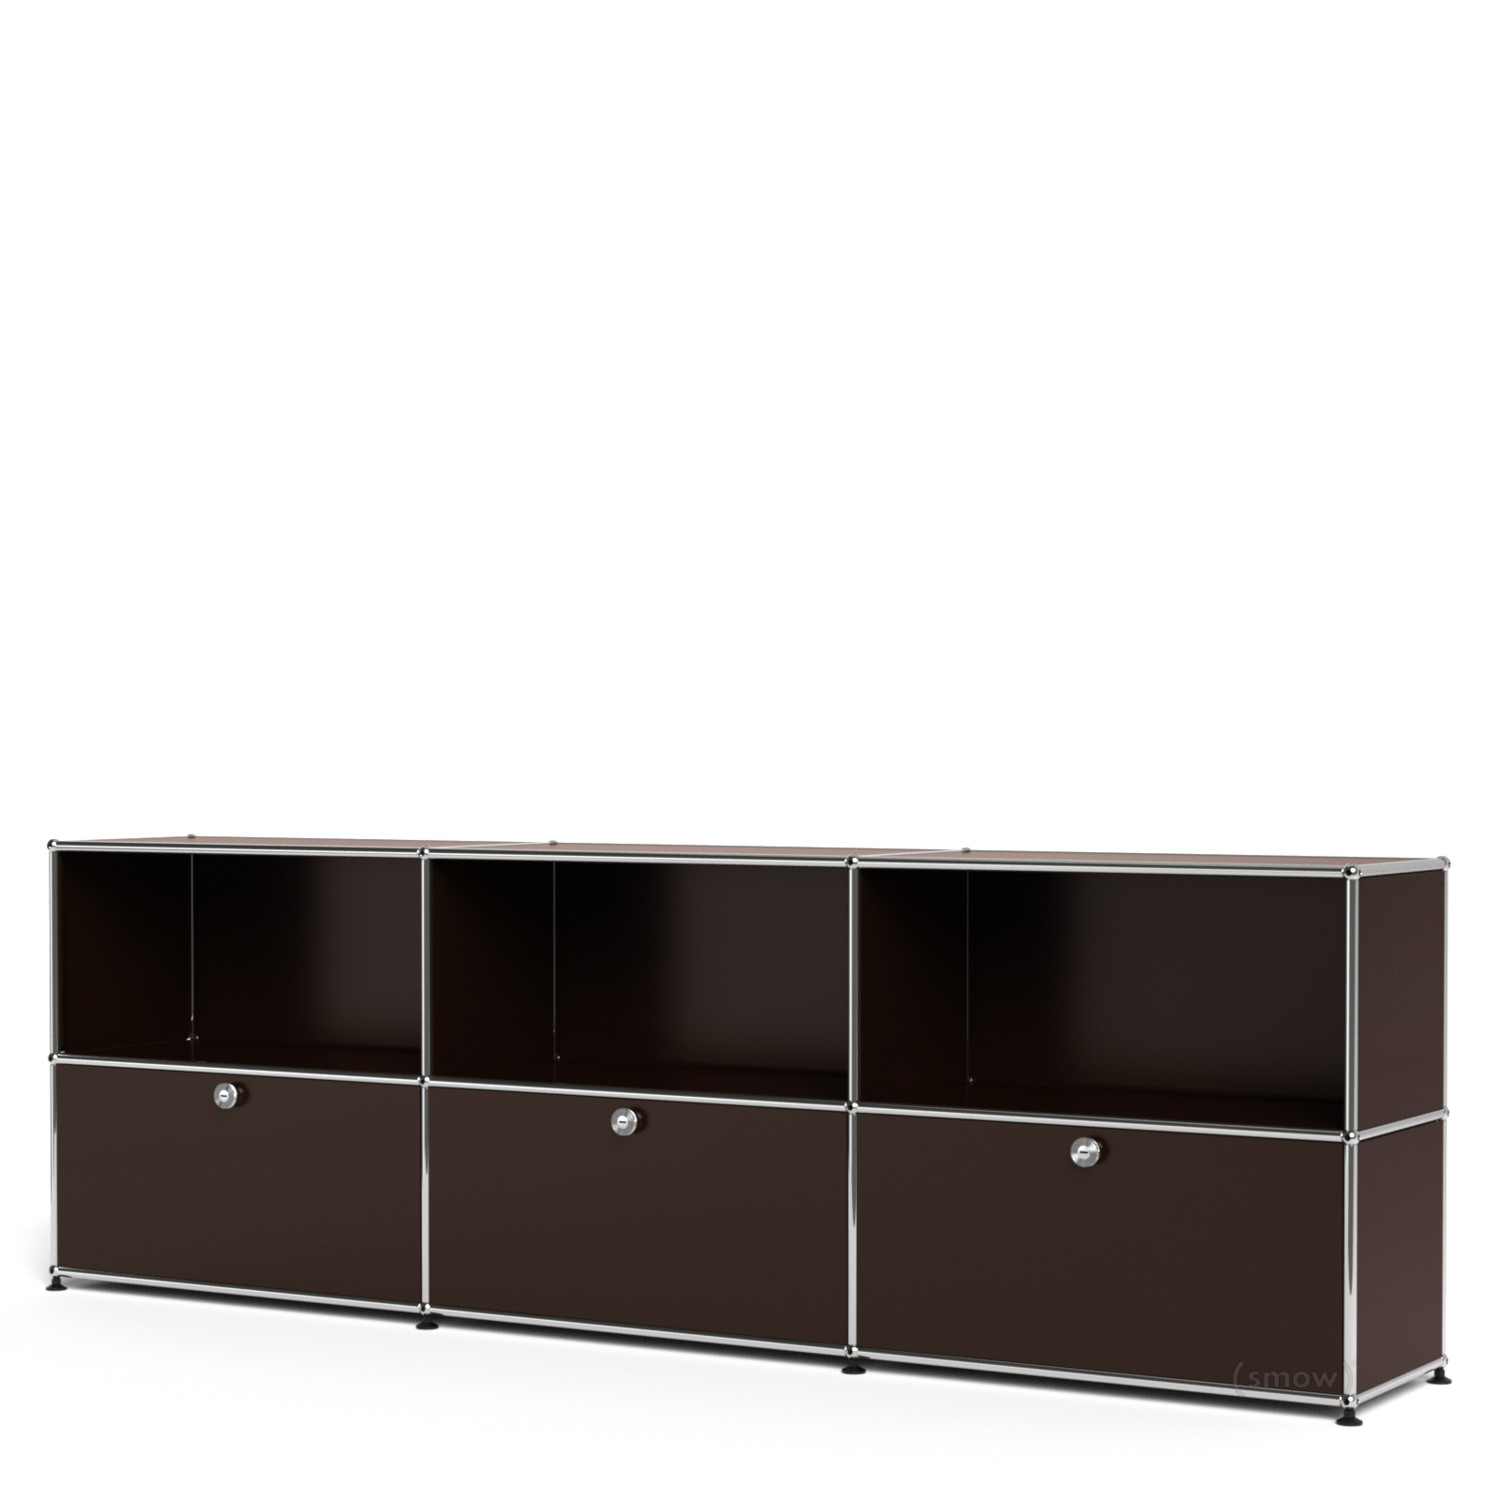 Usm haller sideboard xl customisable usm brown open for Usm haller braun